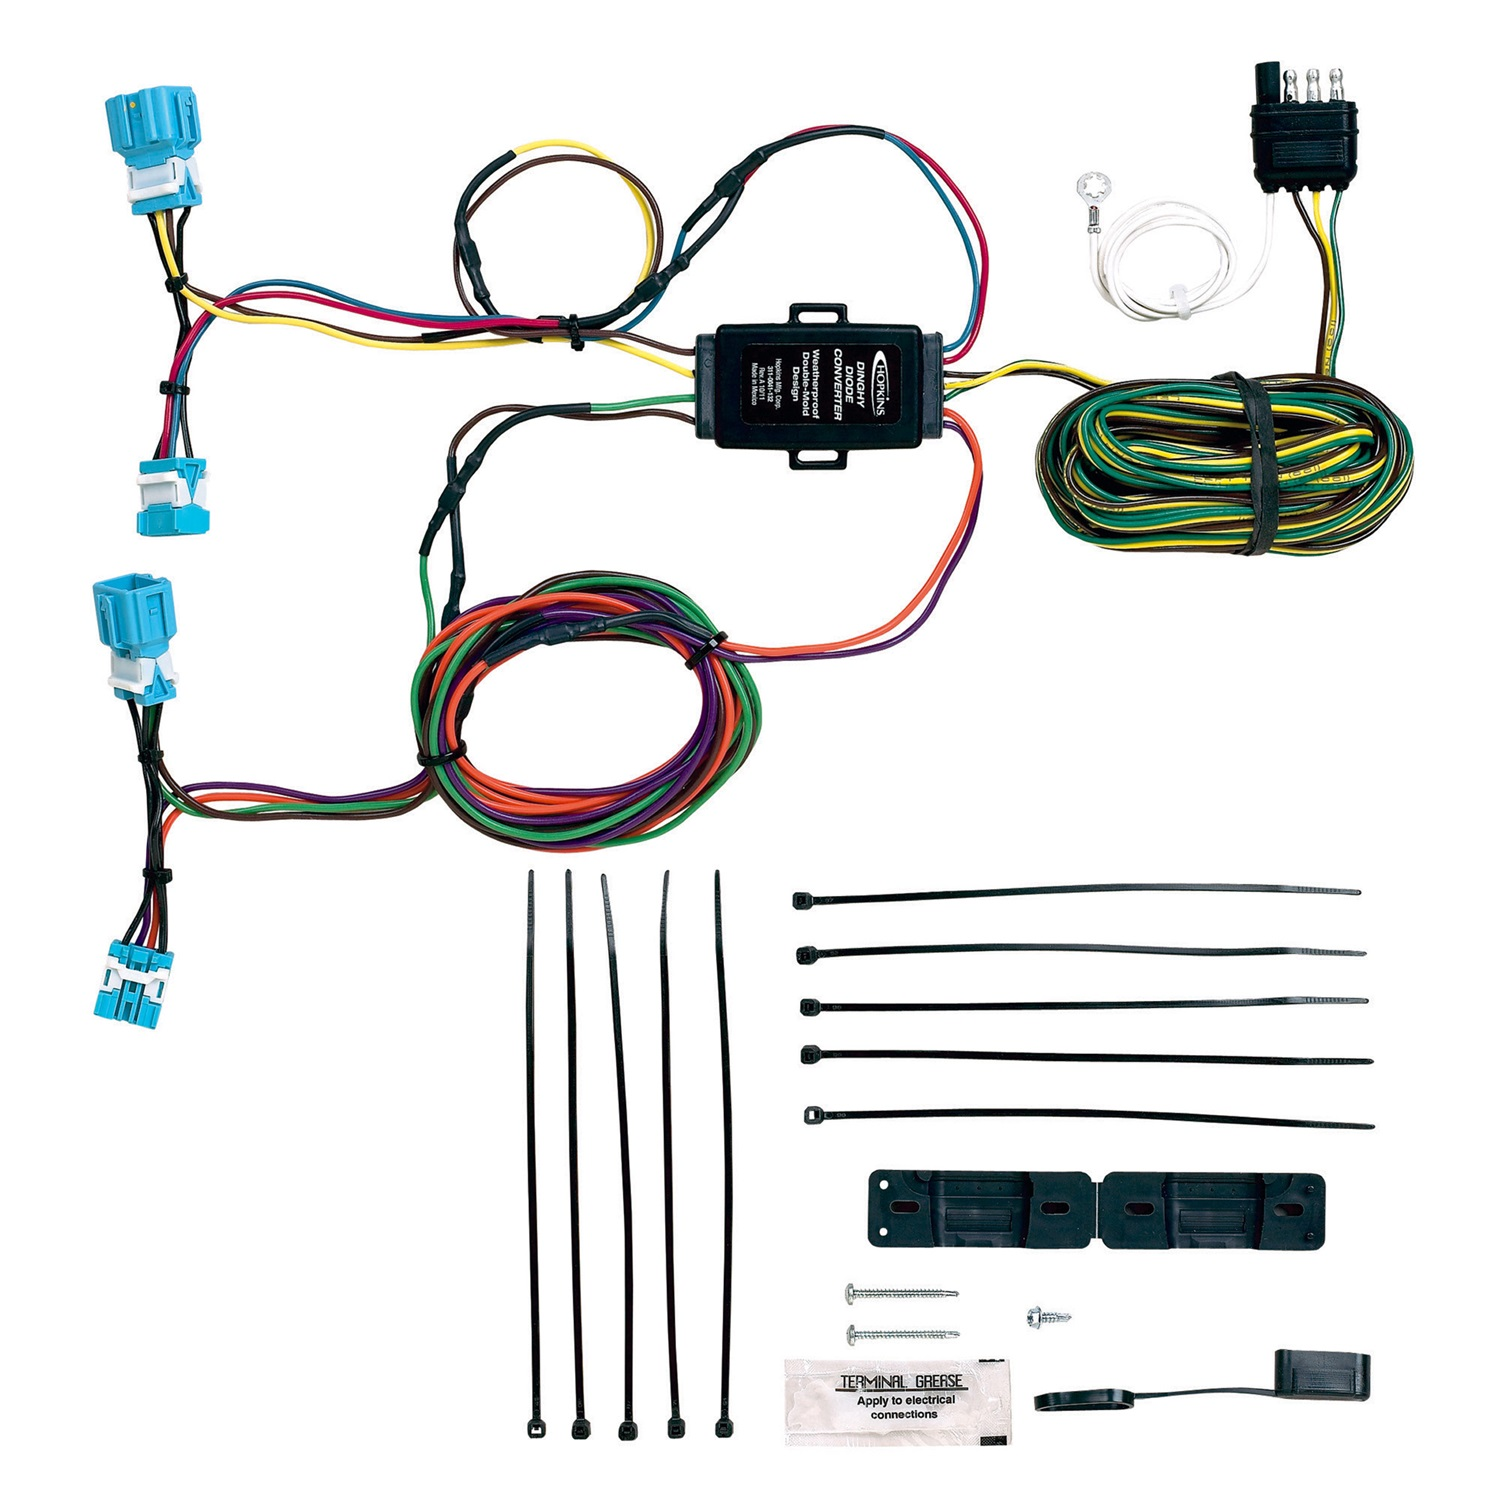 Hopkins Hitching Wiring Diagram Building A Simple Automotive Towing Solution 56300 Plug In Towed Vehicle Karr